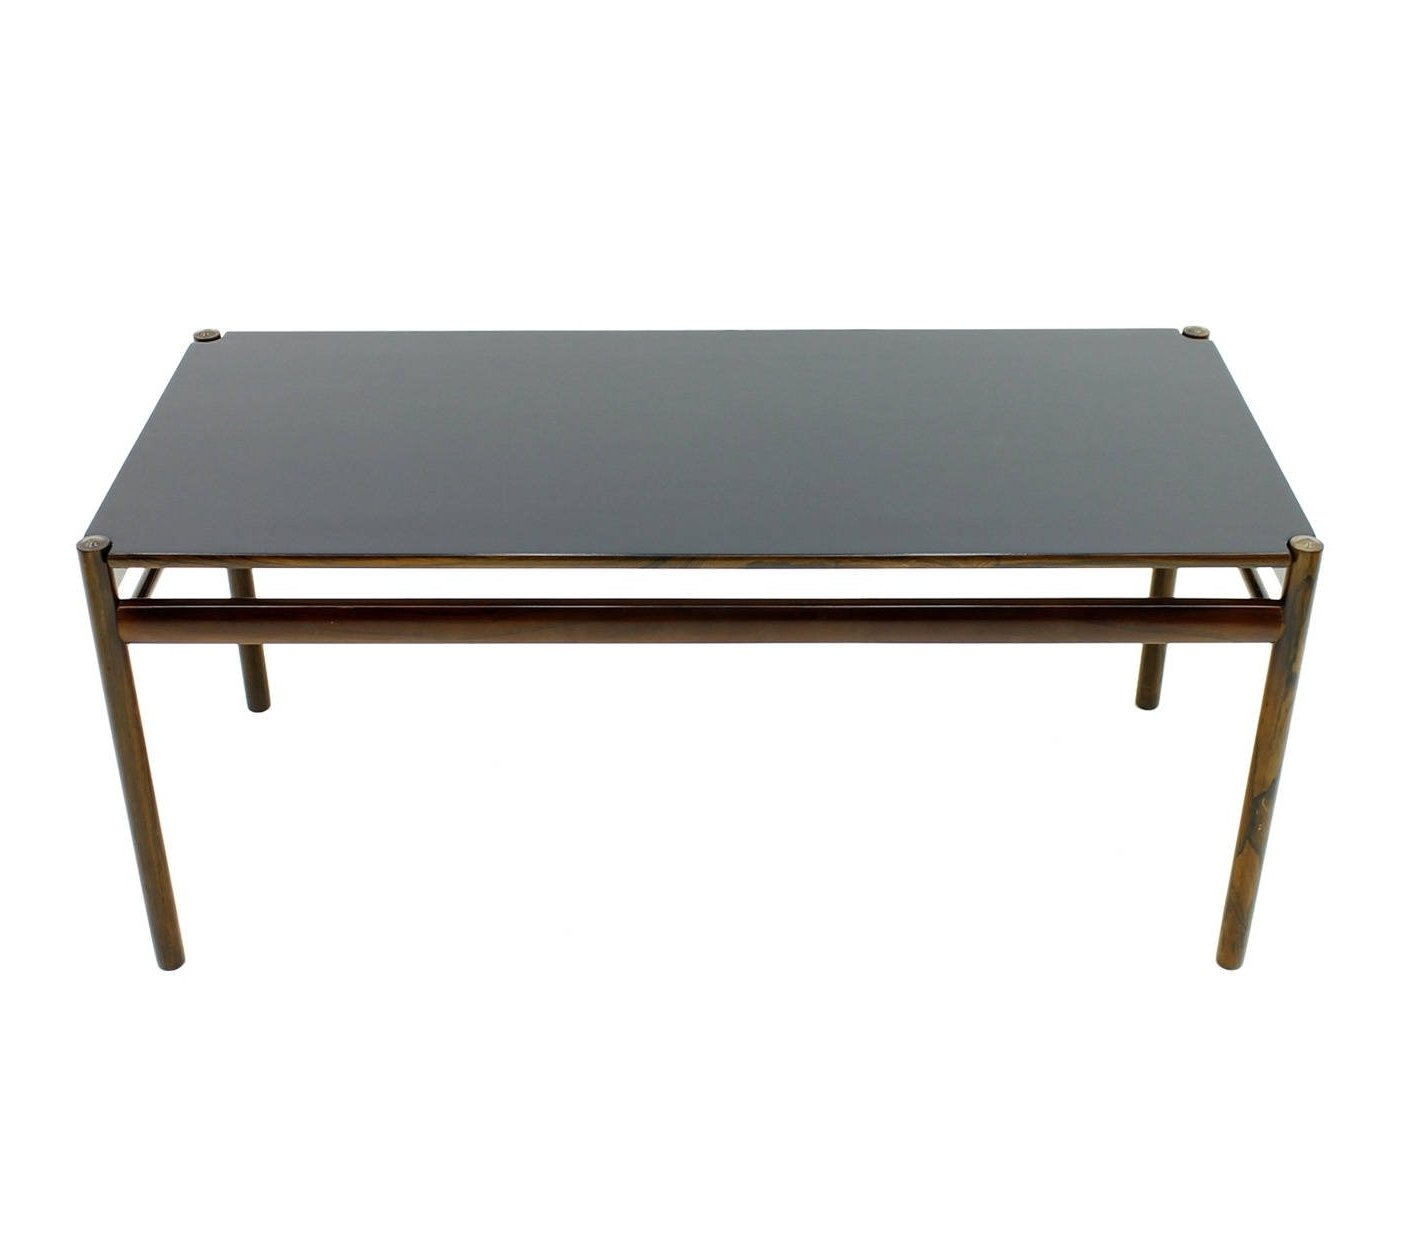 Flip Top Coffee Table From The Fifties By Ole Wanscher For P Jeppesen M Belfabrik 64209